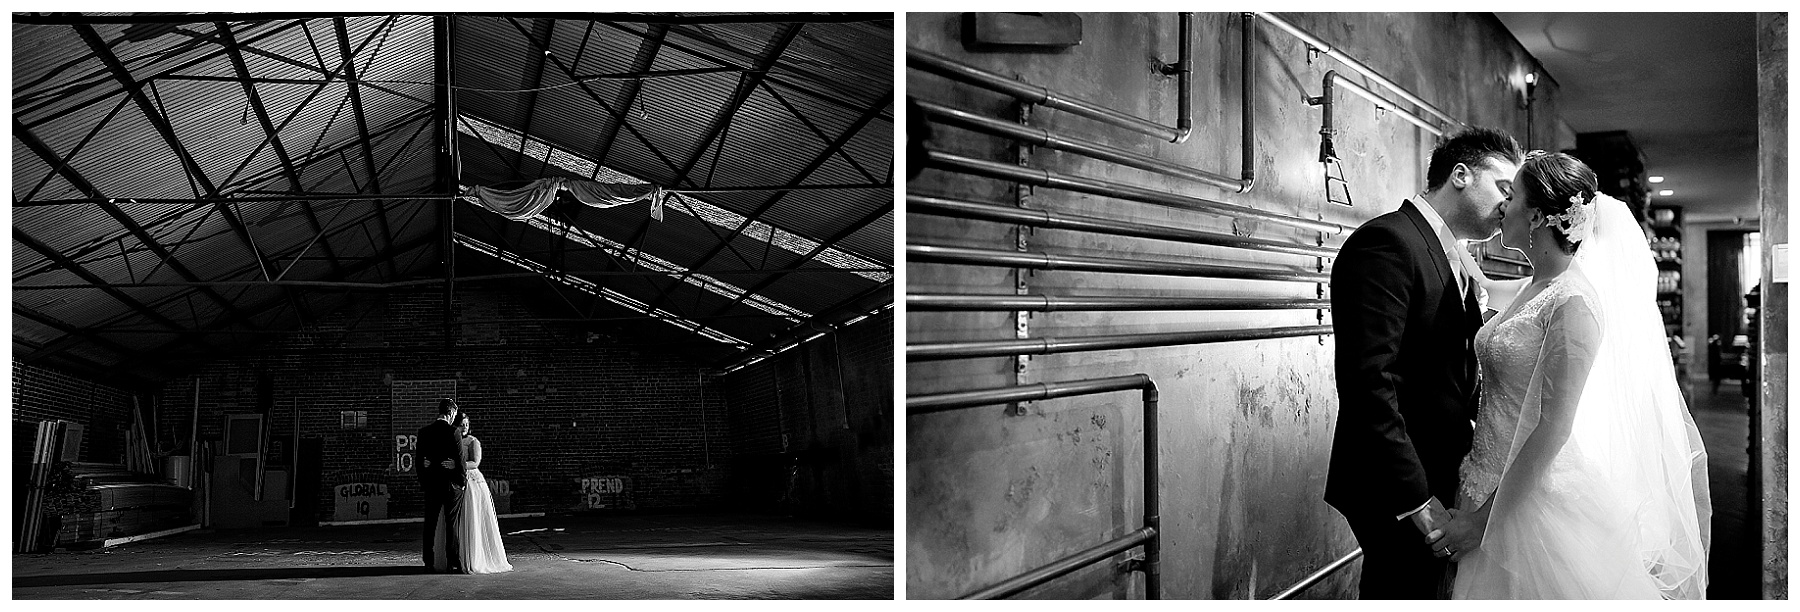 Industrial Wedding Photography Perth